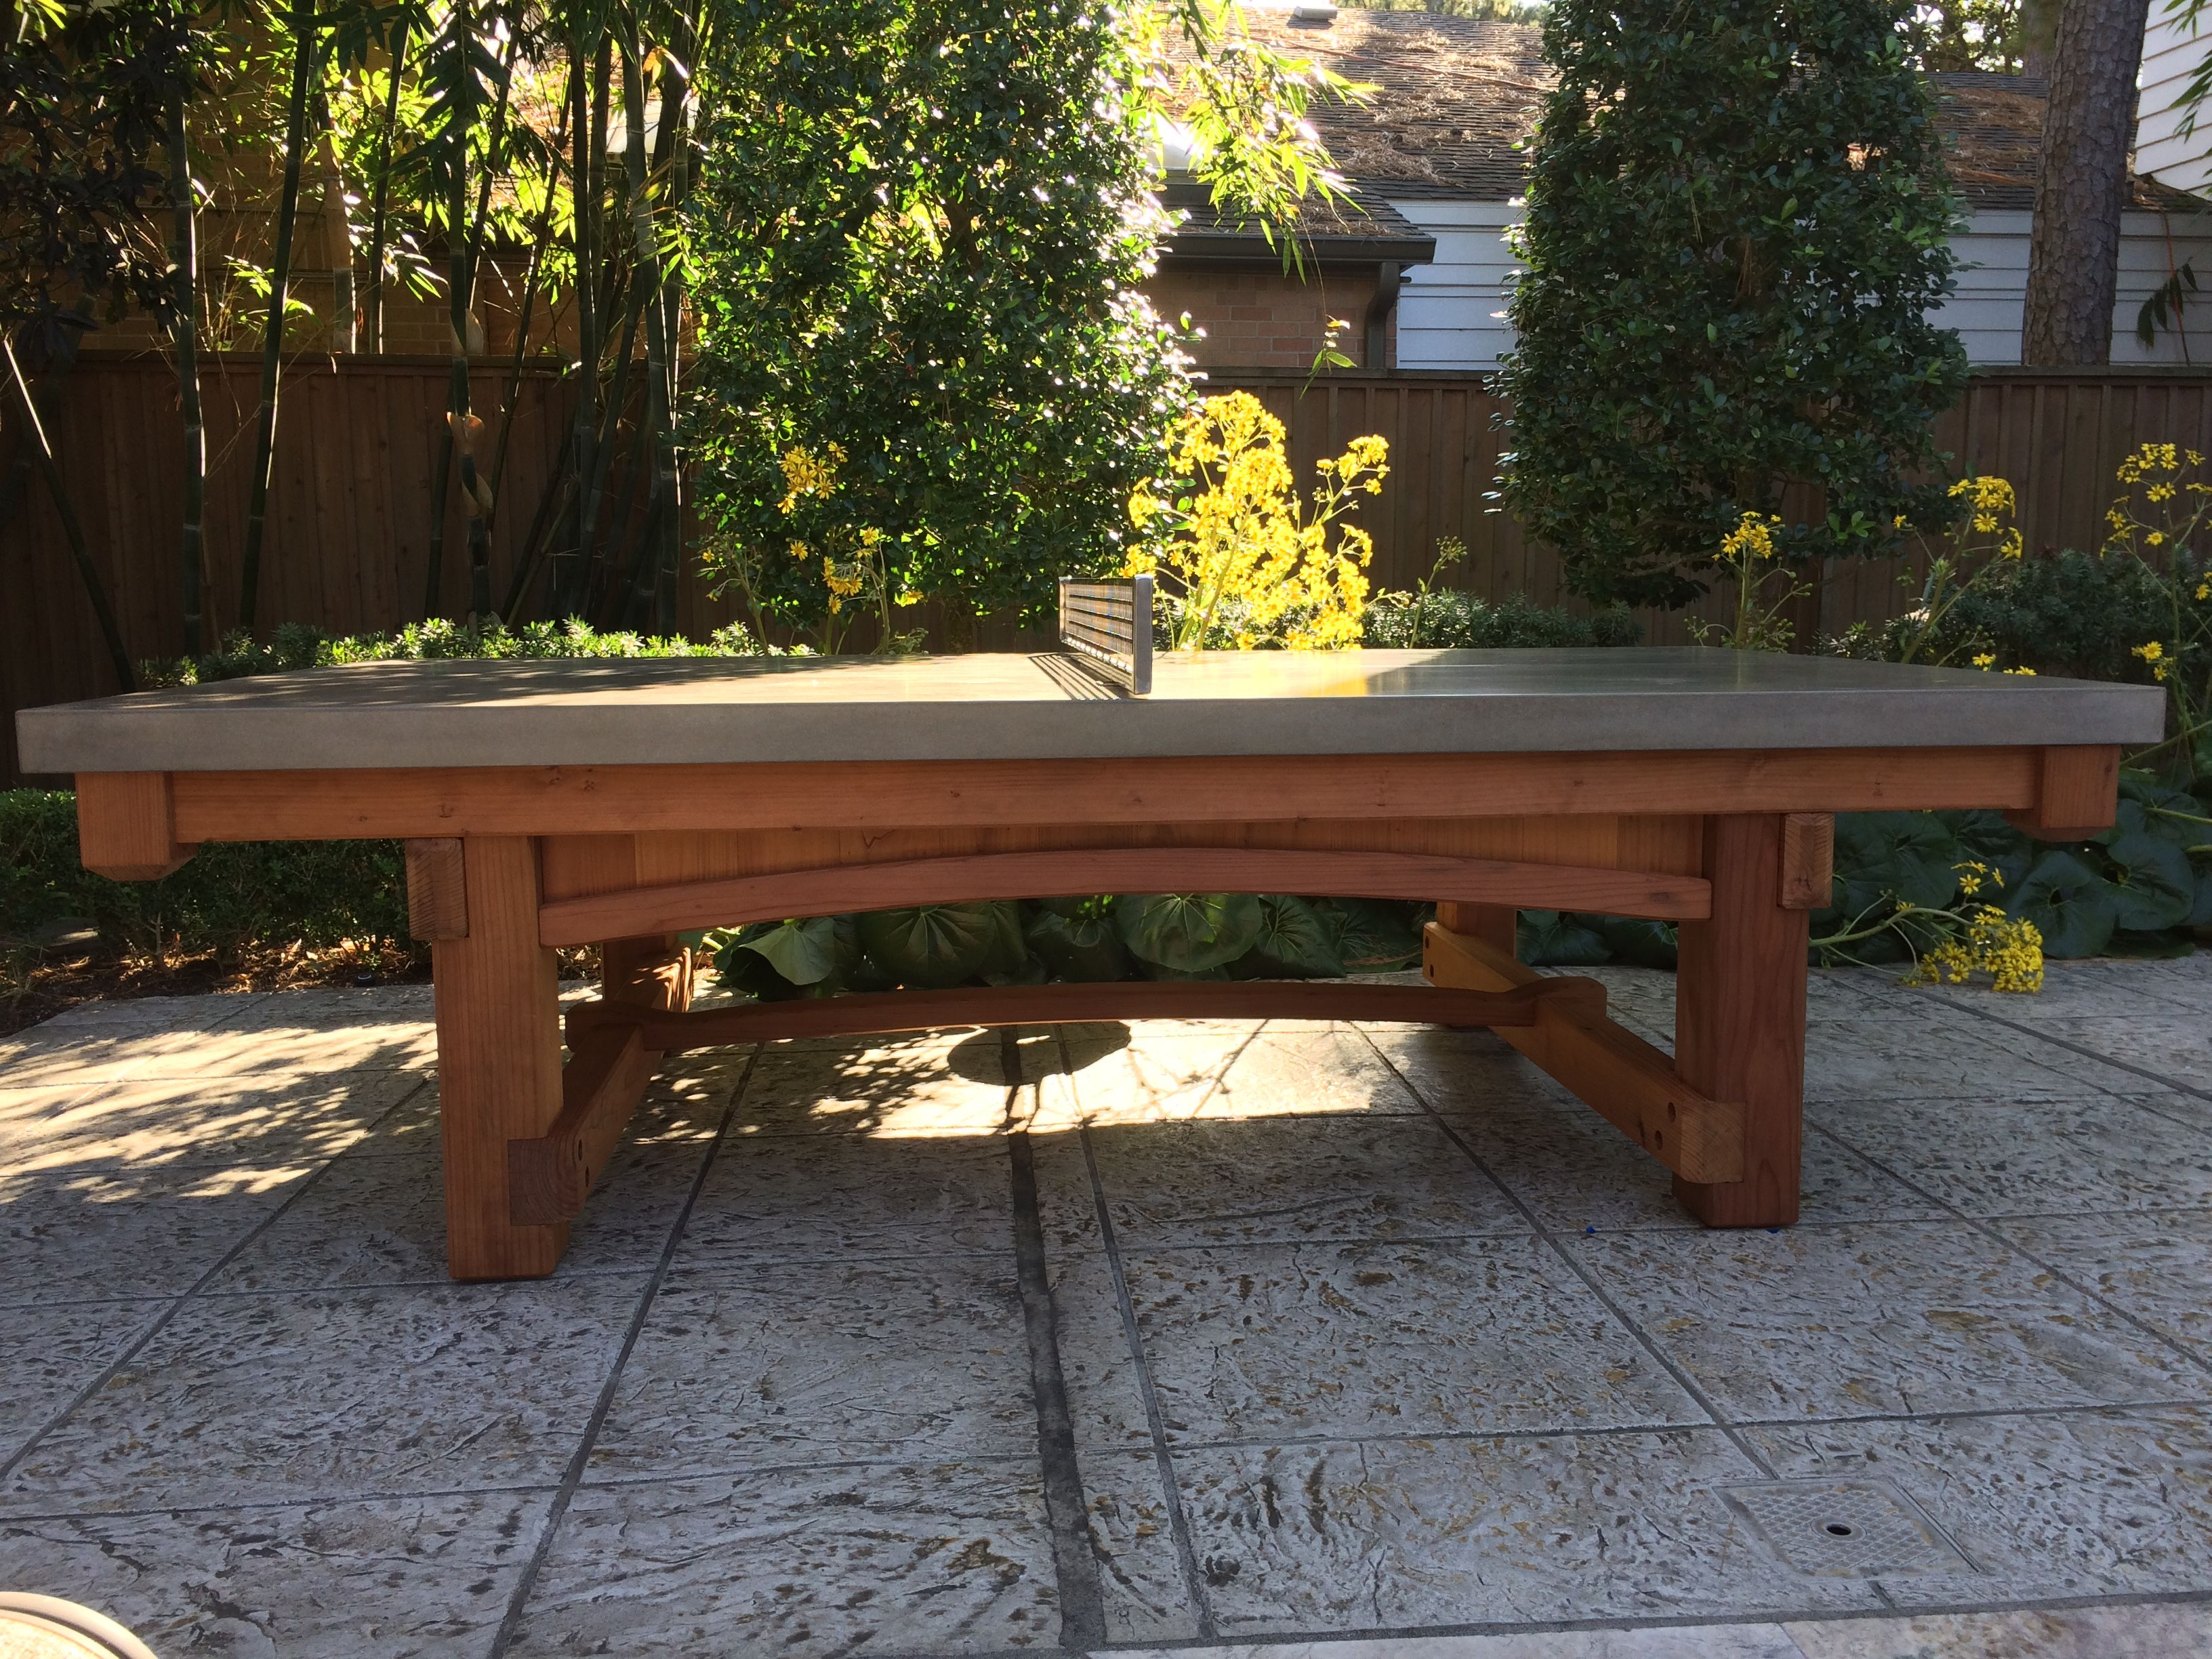 c2327d099ec2114e76a479a2af82b324 Top Result 50 Lovely Redwood Coffee Table Photos 2017 Hgd6